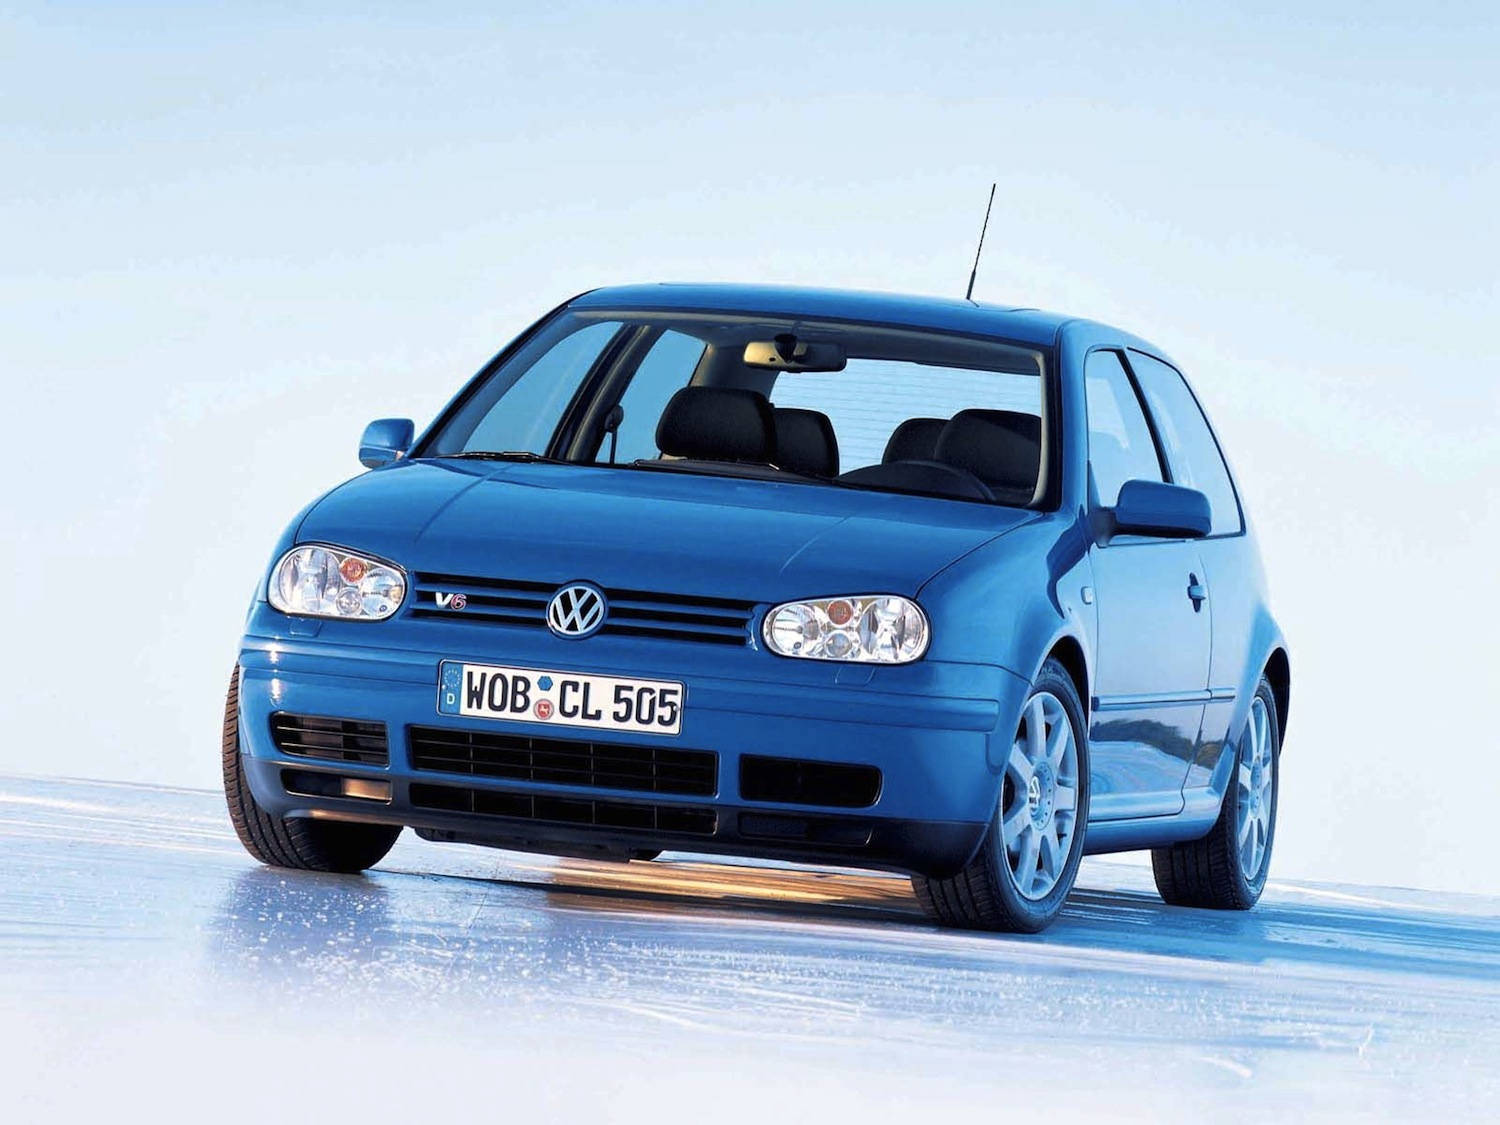 2001 volkswagen golf iv v64motion volkswagen photo 39573580 fanpop. Black Bedroom Furniture Sets. Home Design Ideas